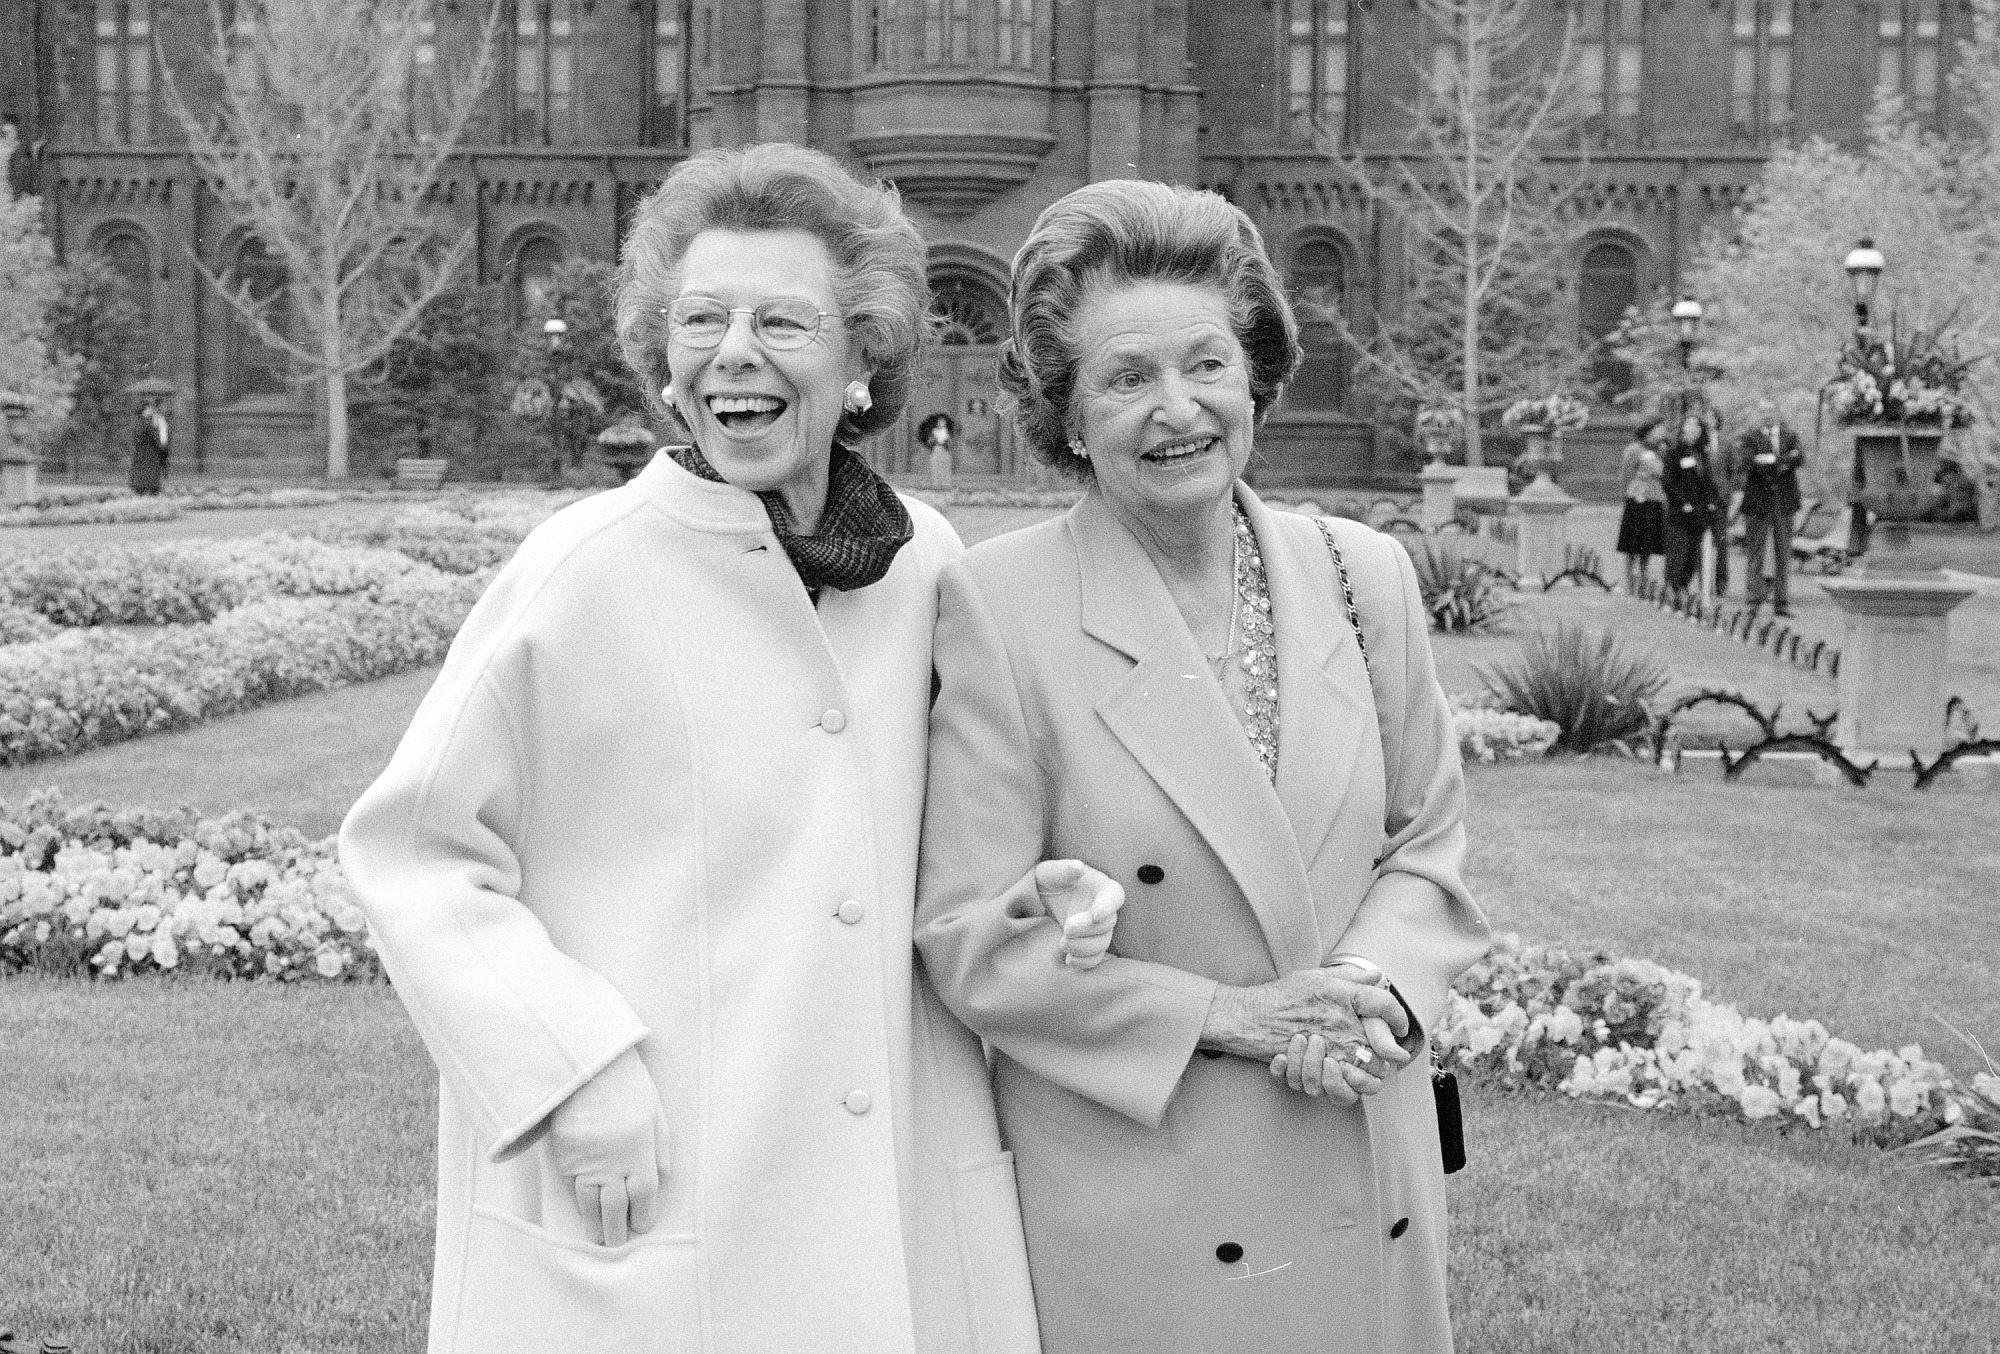 Enid A. Haupt and Lady Bird Johnson